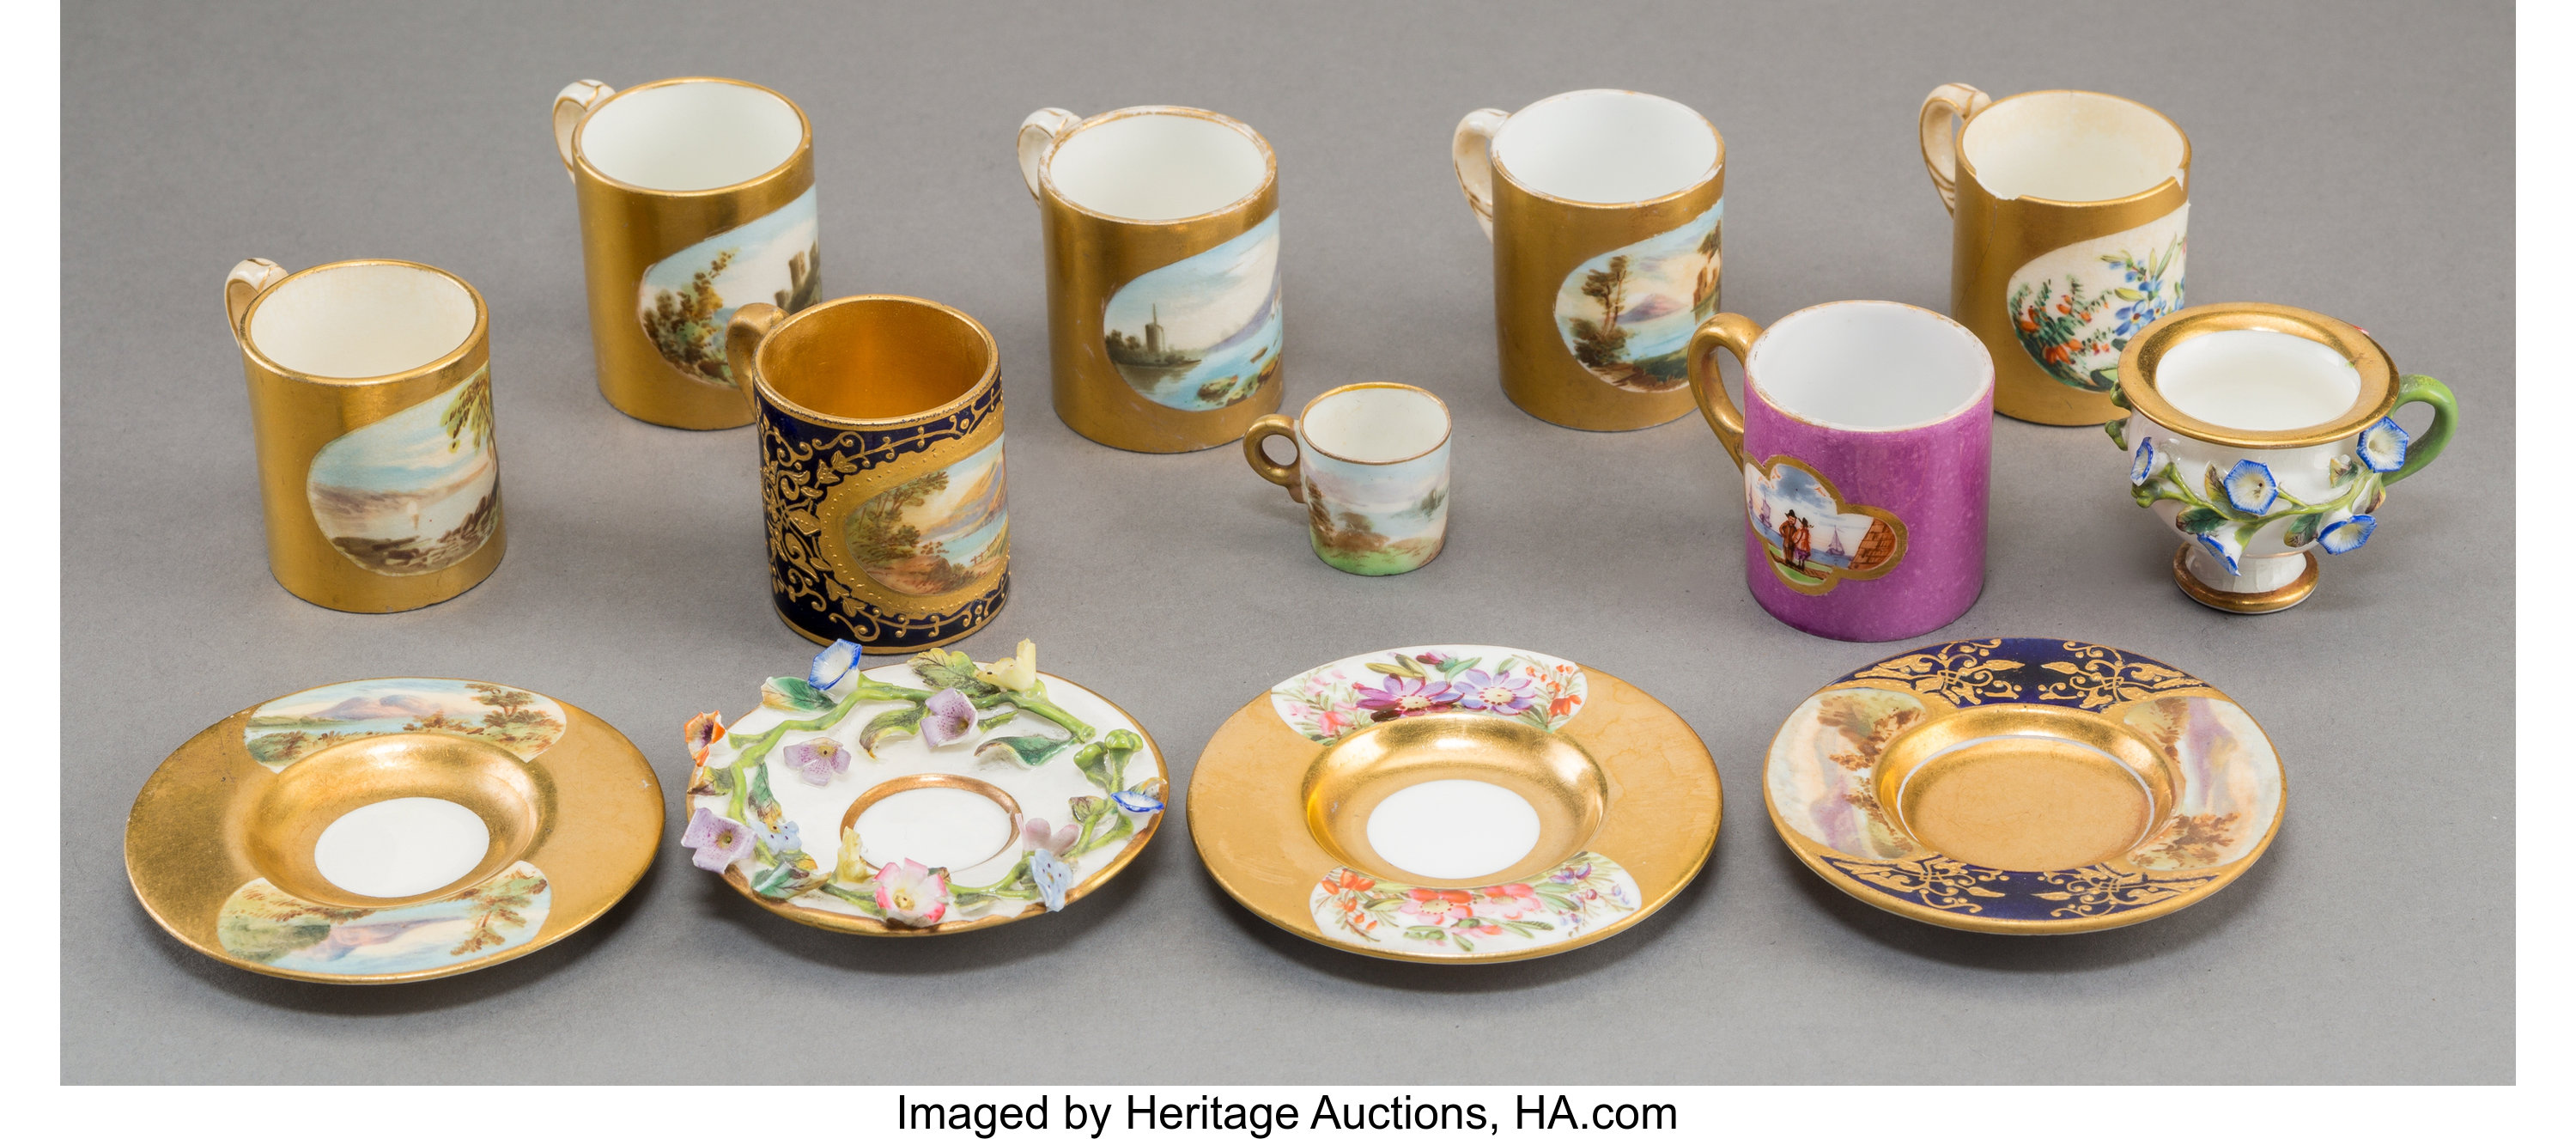 Thirteen English and German Miniature Porcelain Cups and